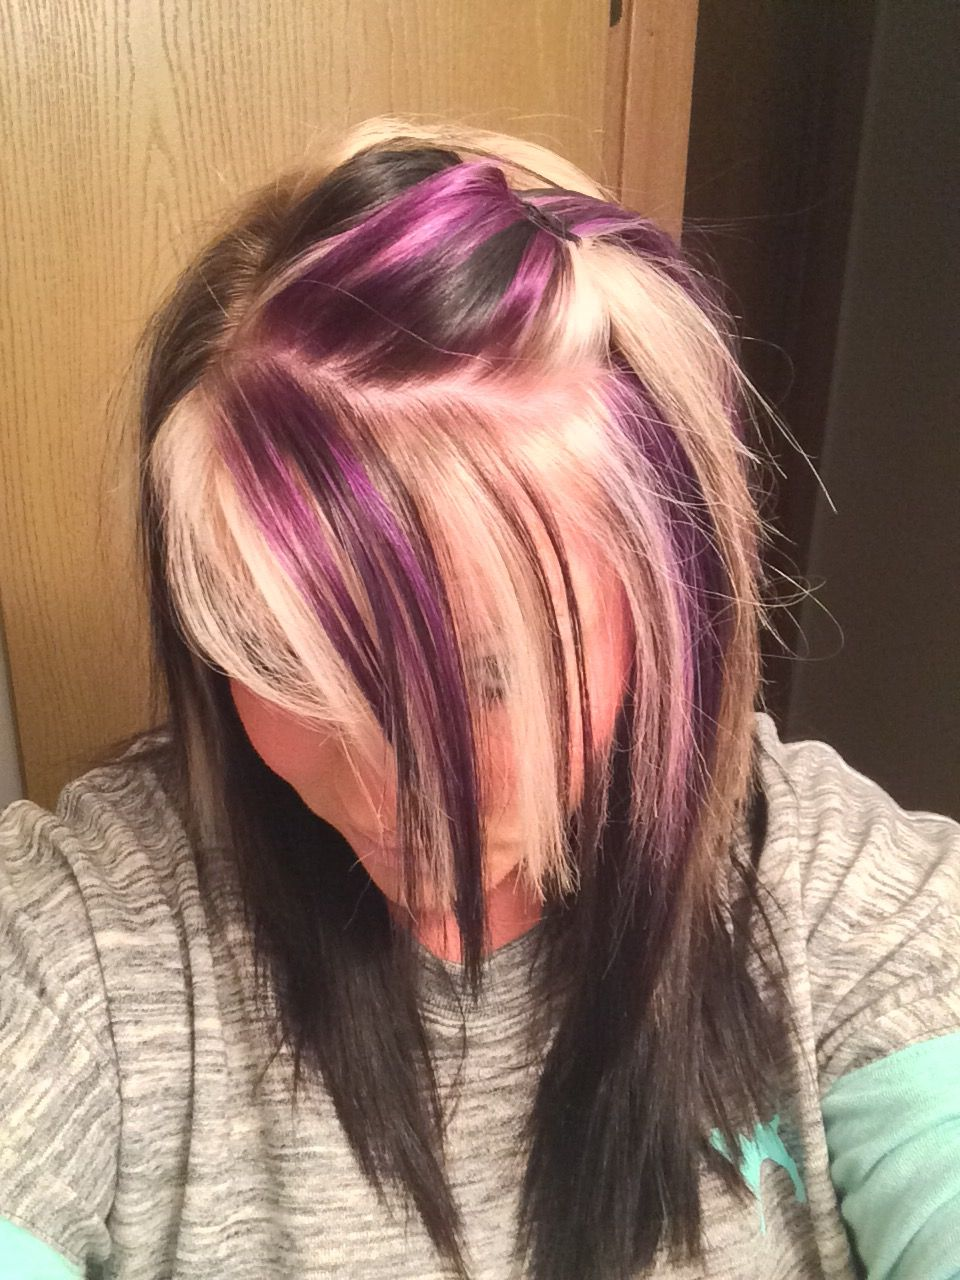 Purple Blonde And Black On Top With All Black Underneath With